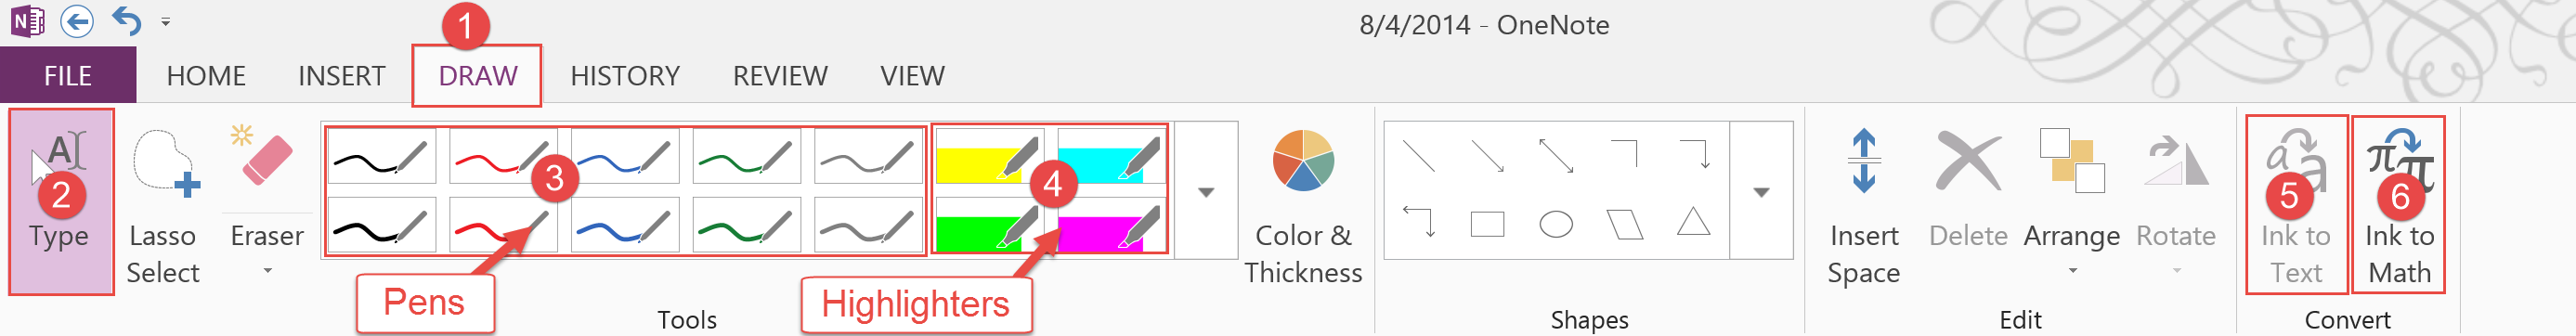 OneNote Draw Options